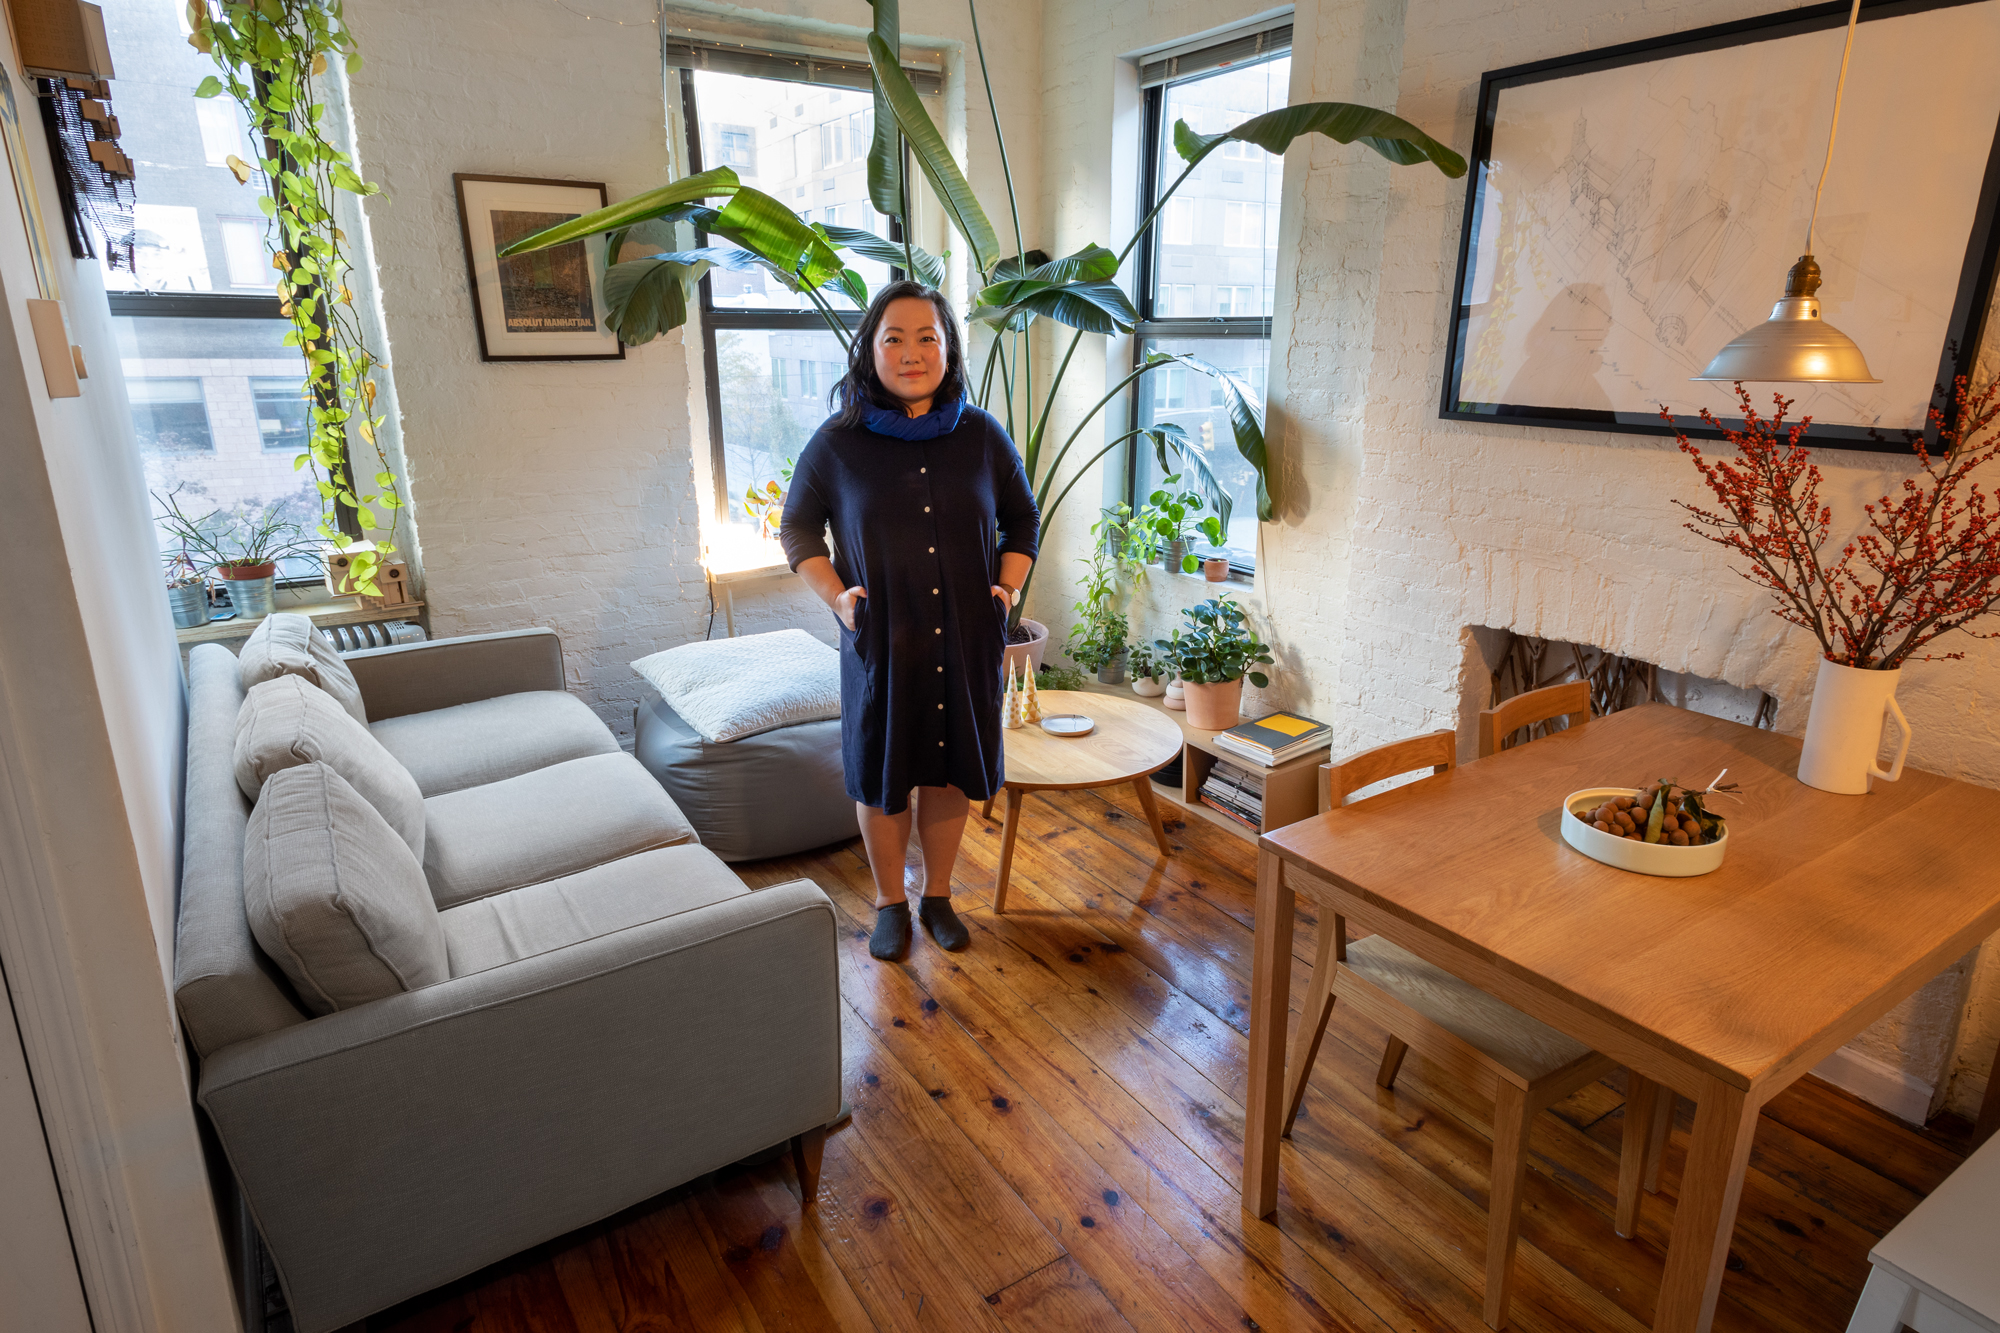 Posted on wed february 6 2019 by dana schulz in features hells kitchen interiors my sqft house tours